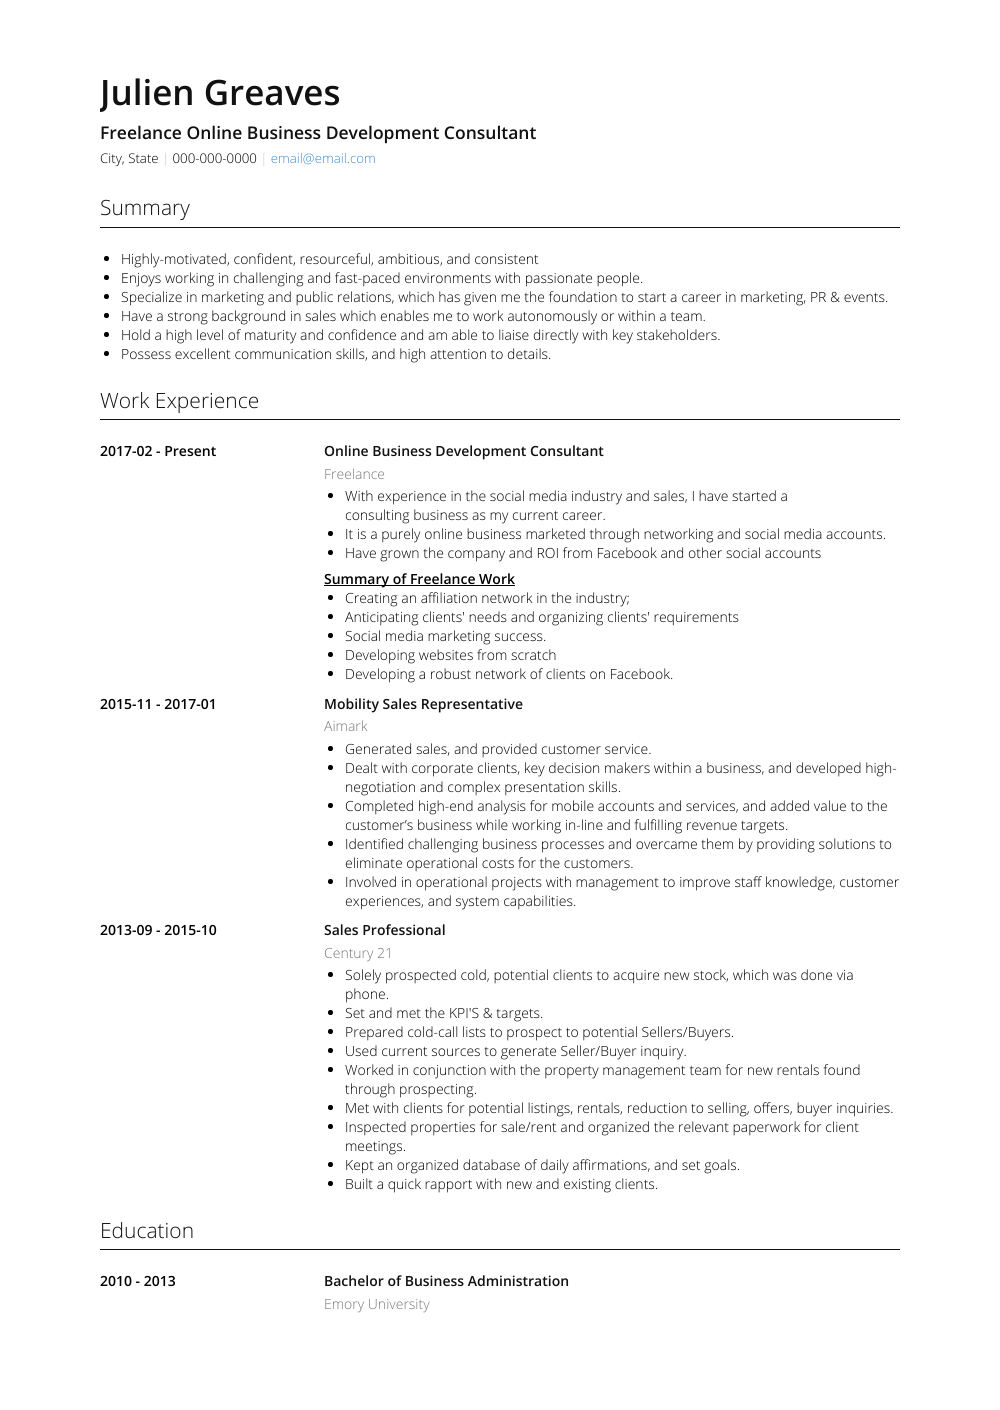 Freelance Online Business Development Consultant Resume Sample and Template